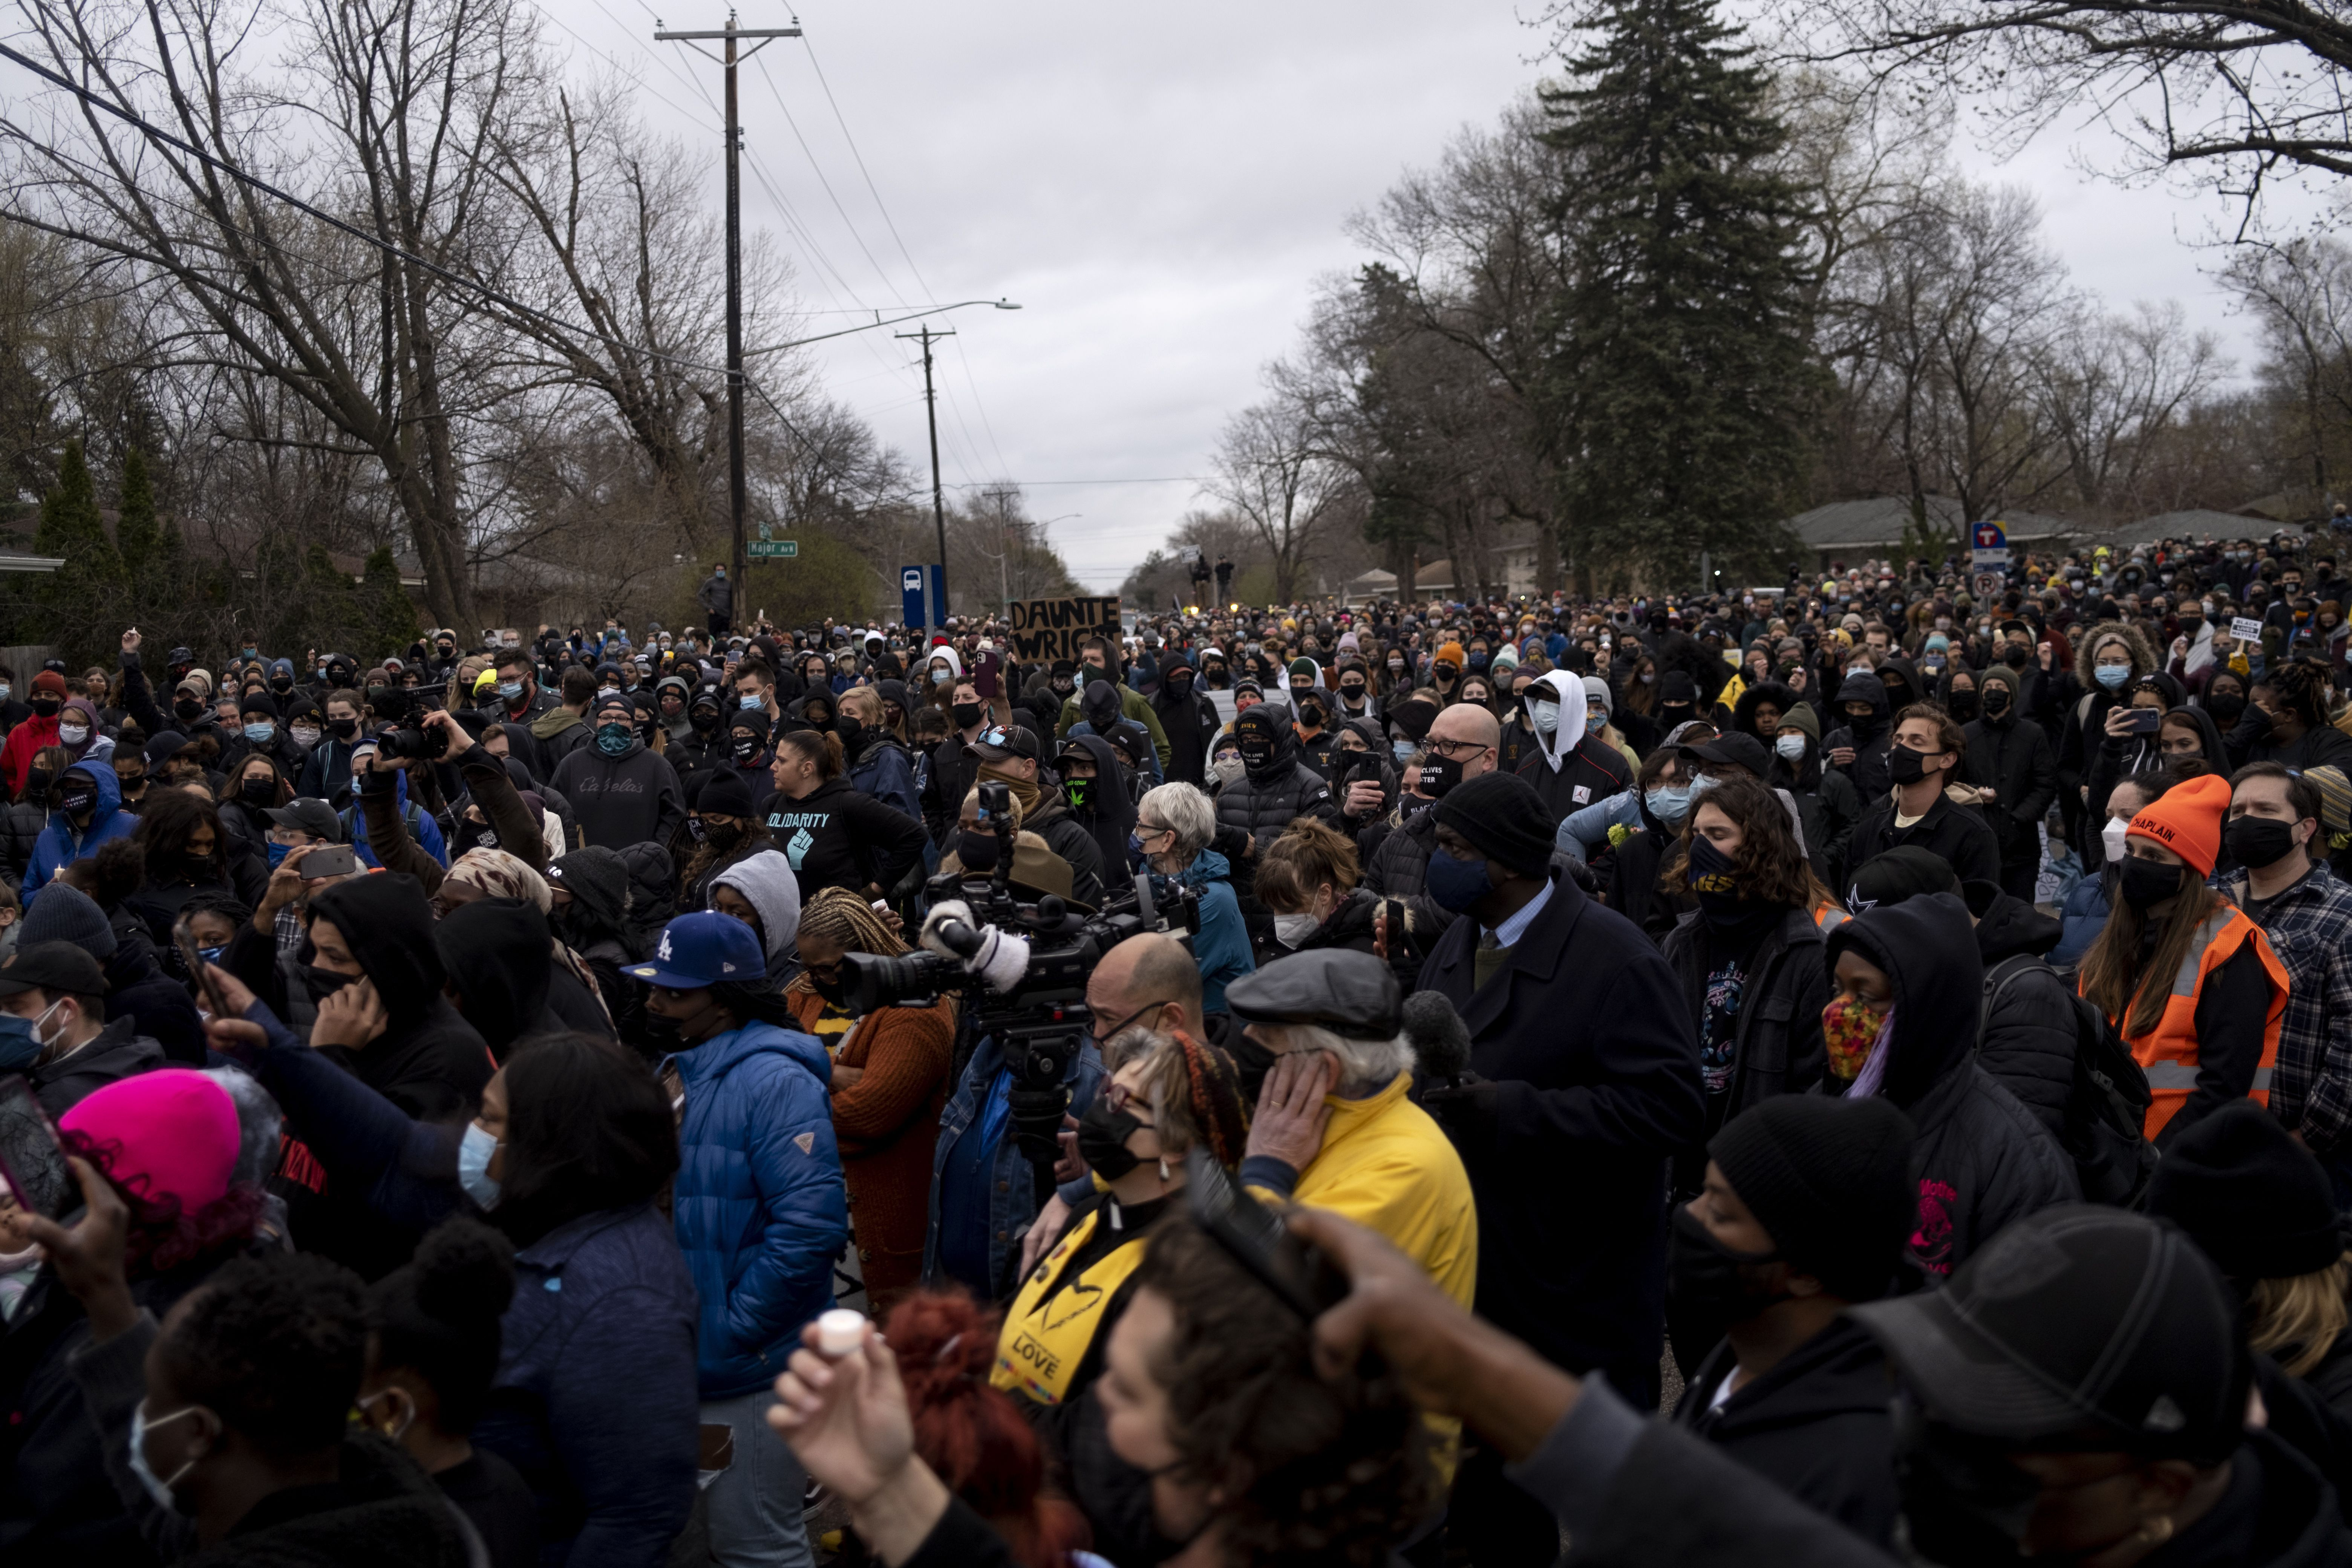 People gather during a vigil for Daunte Wright in Brooklyn Center, Minnesota, April 12.